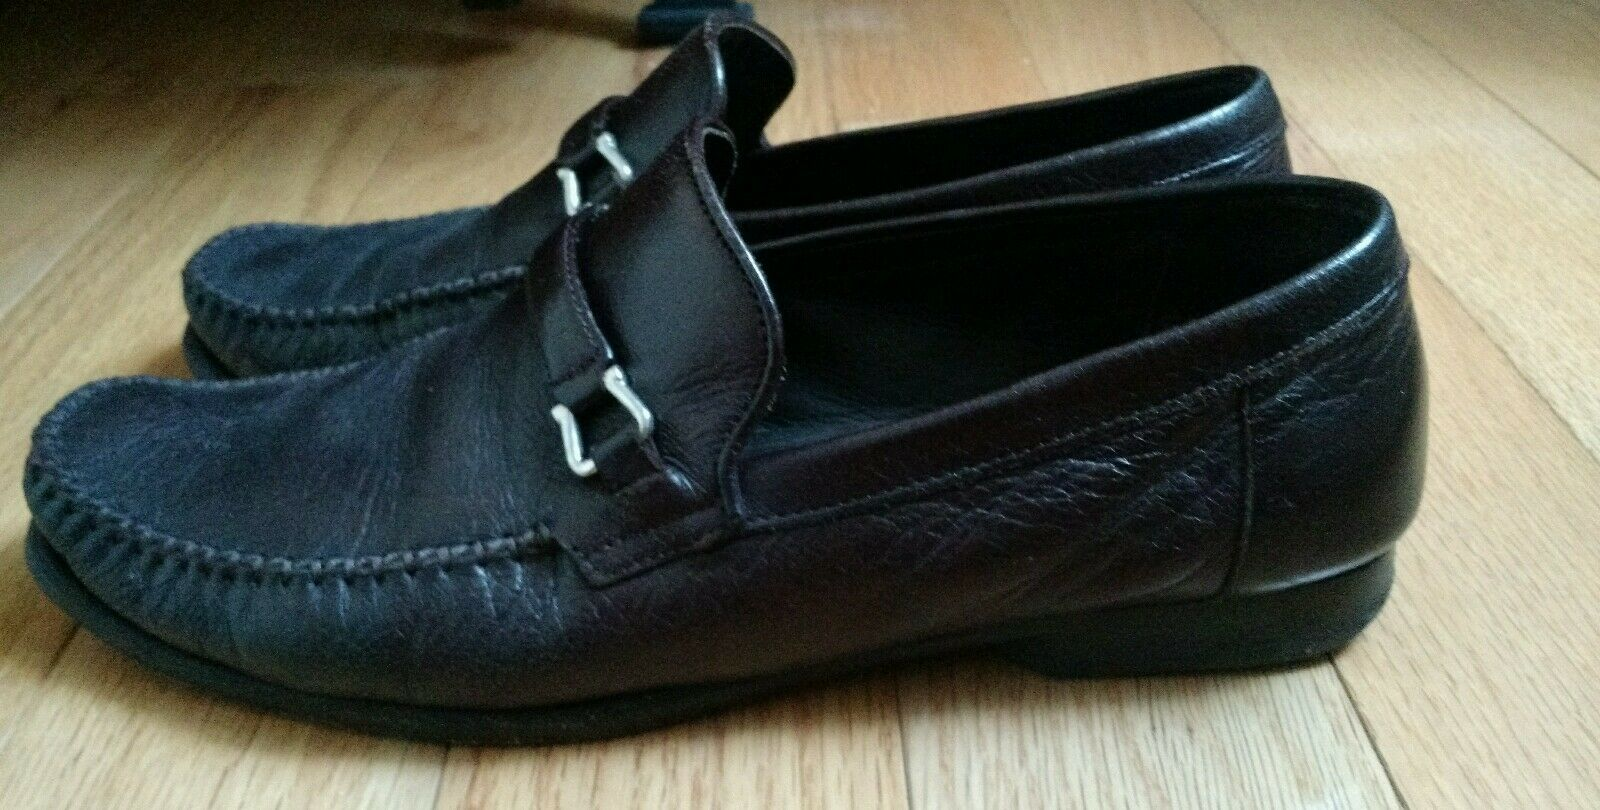 470 Bruno Magli Leather Dress Tolomino Slip-on Moccasin-style Loafers shoes 7